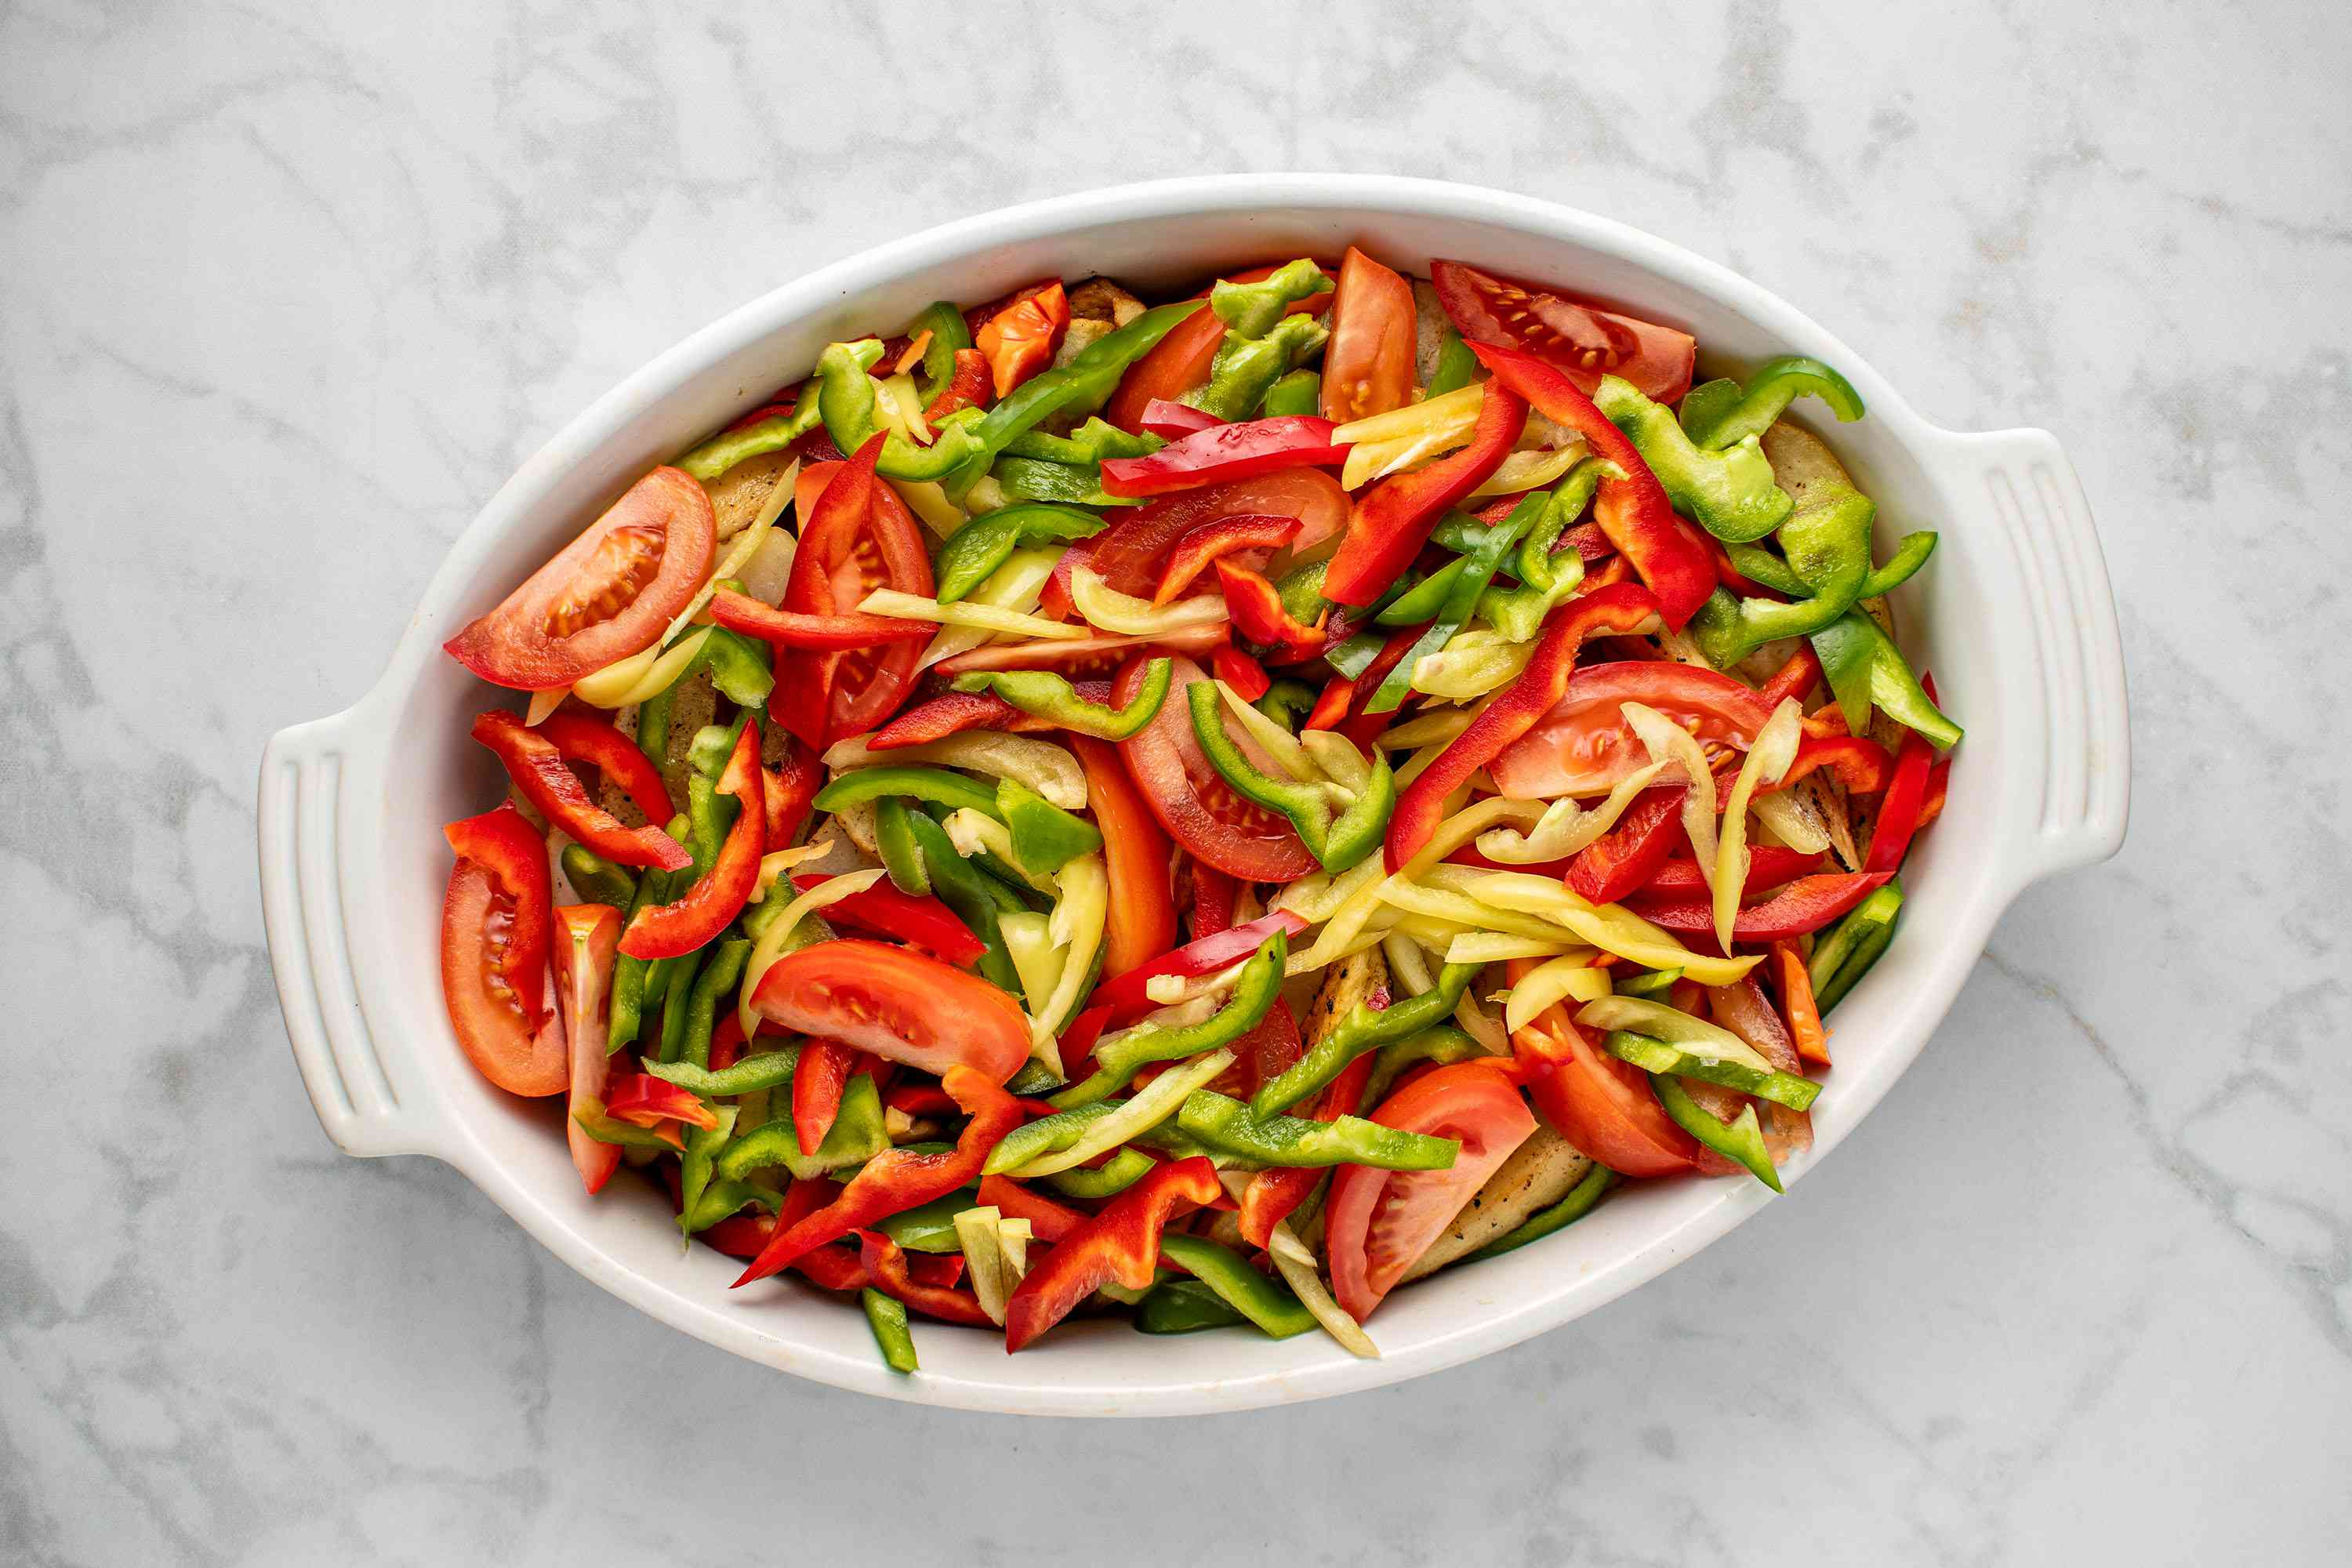 peppers and tomatoes in a baking dish